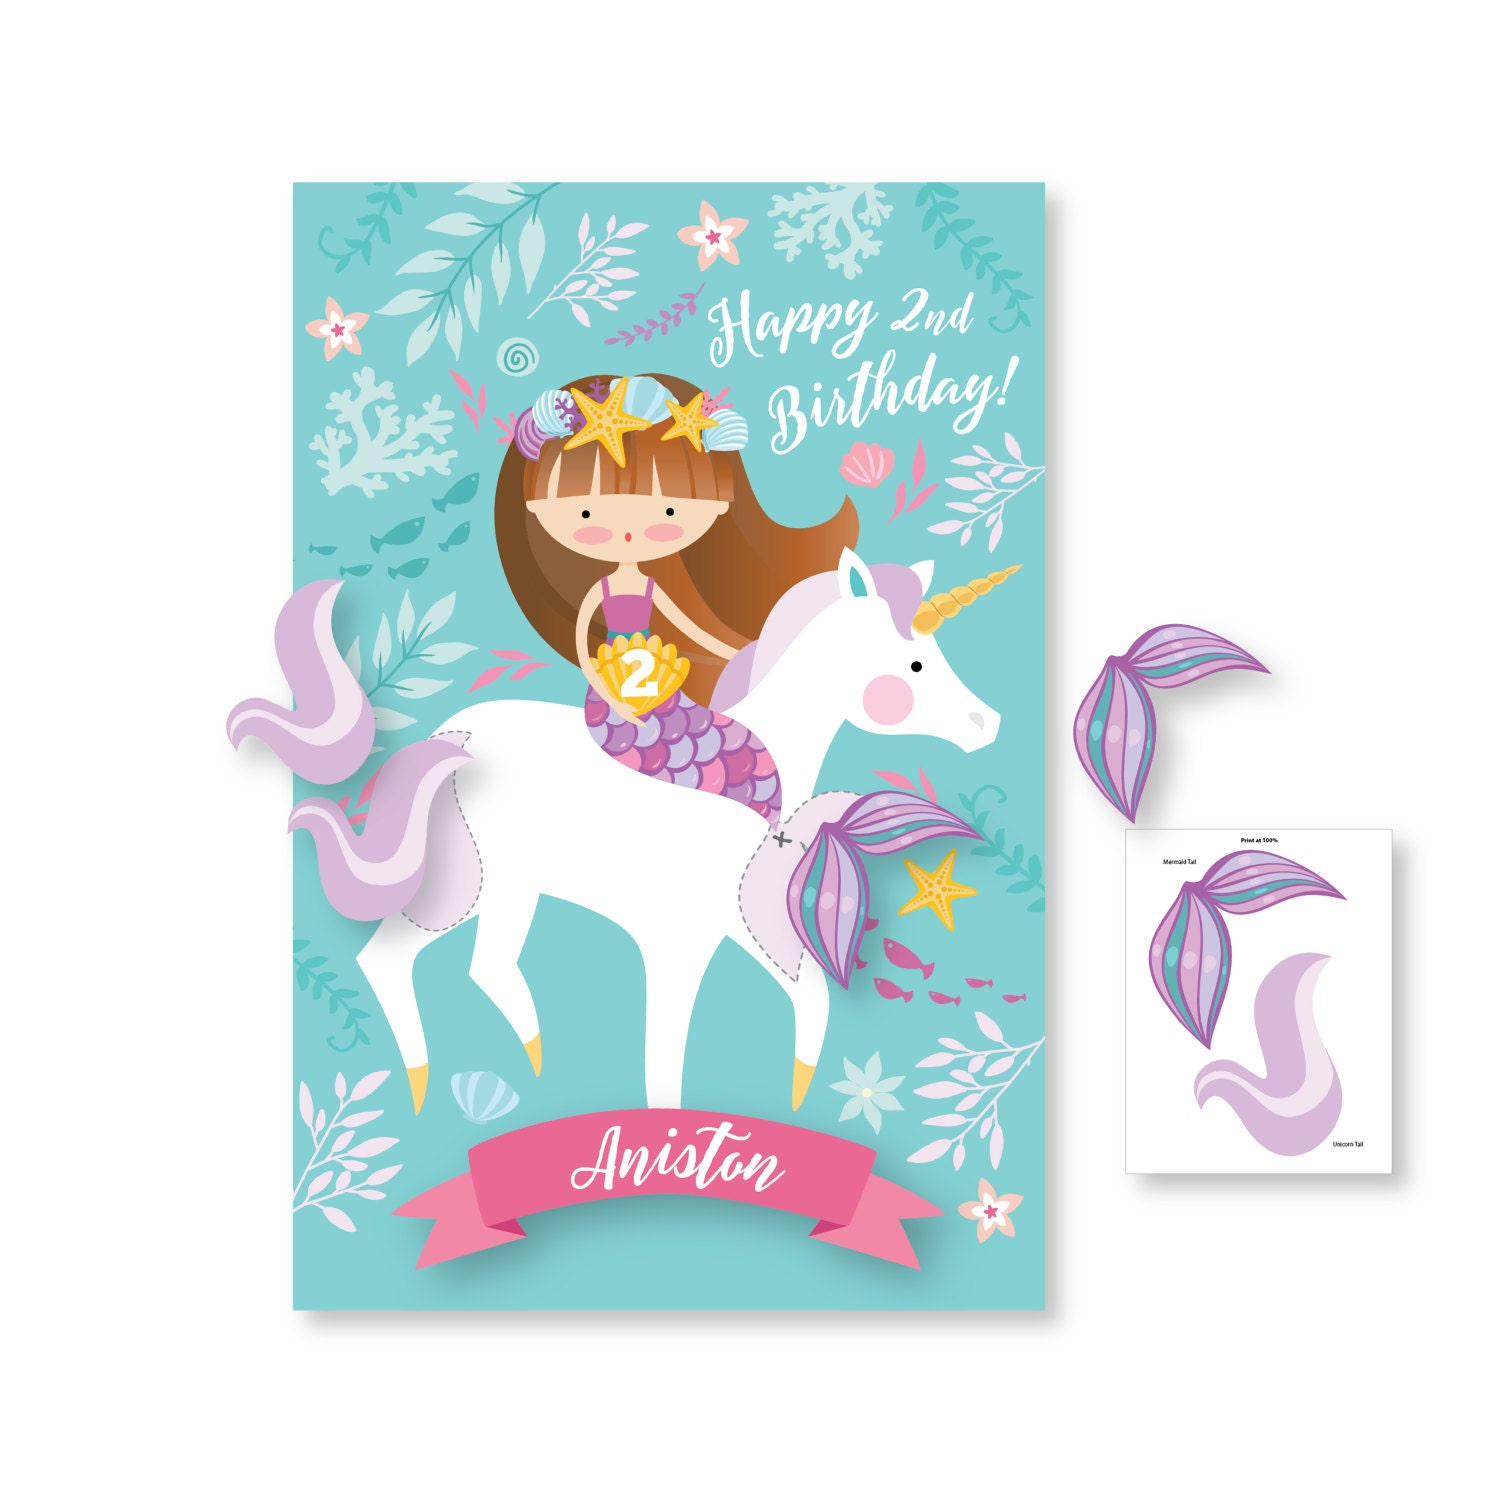 Birthday Party Games Are Hilarious For 8 9 10 11 And 12: Pin The Tail On The Mermaid And Unicorn / Party Game